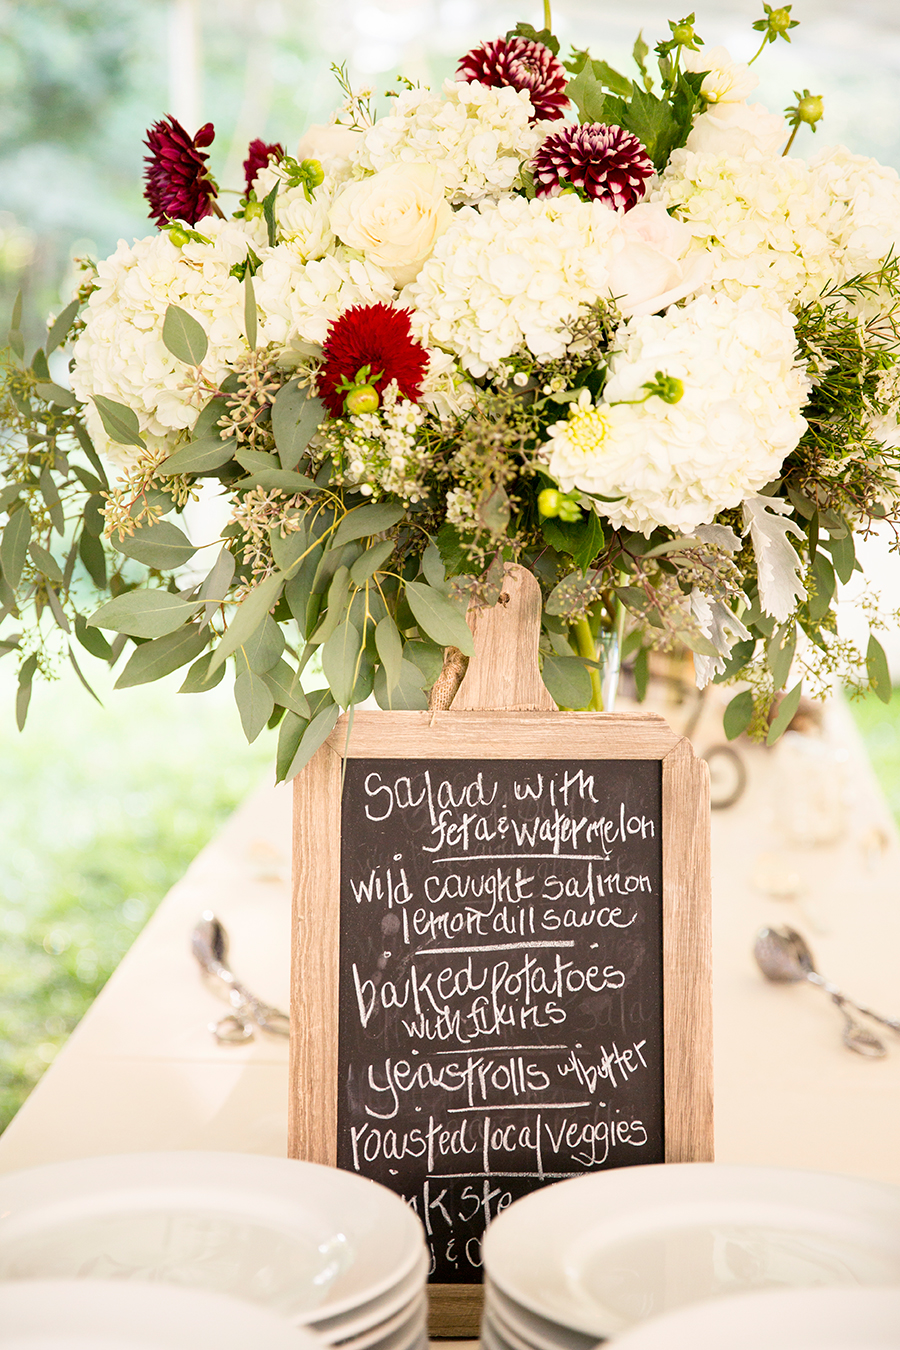 How to Plan a Blog Worthy Wedding on a Budget - Image Property of www.j-dphoto.com